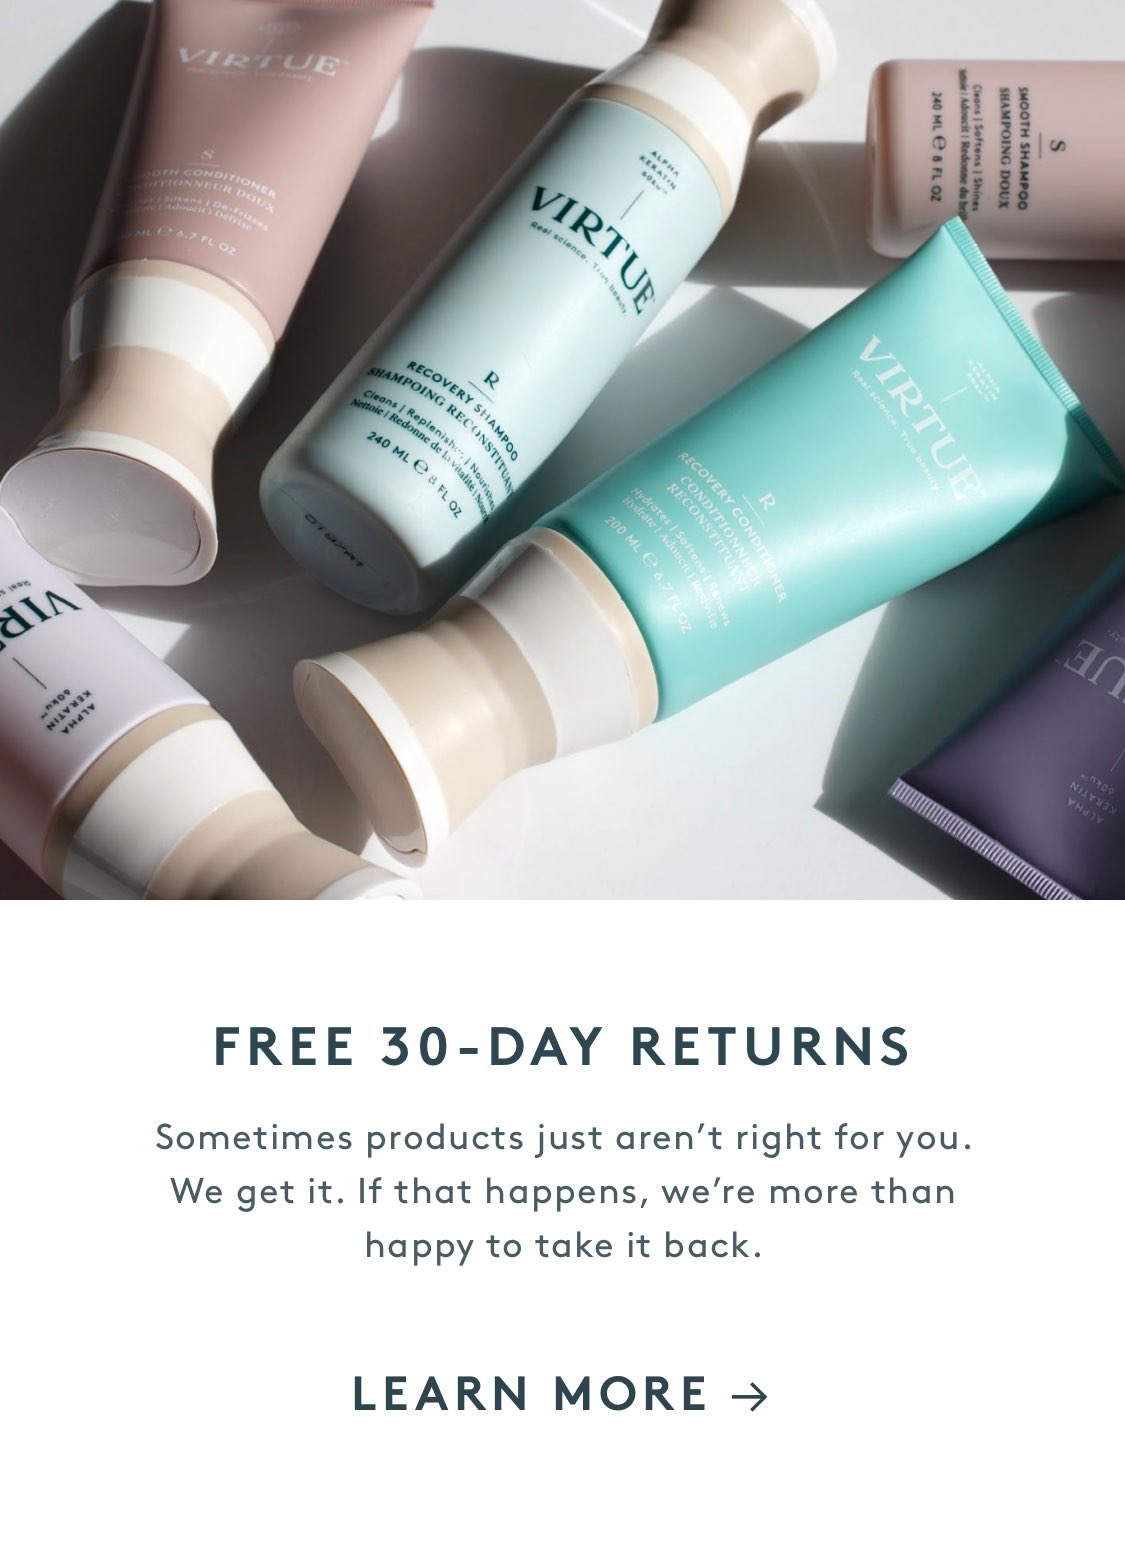 Free 30-Day Returns